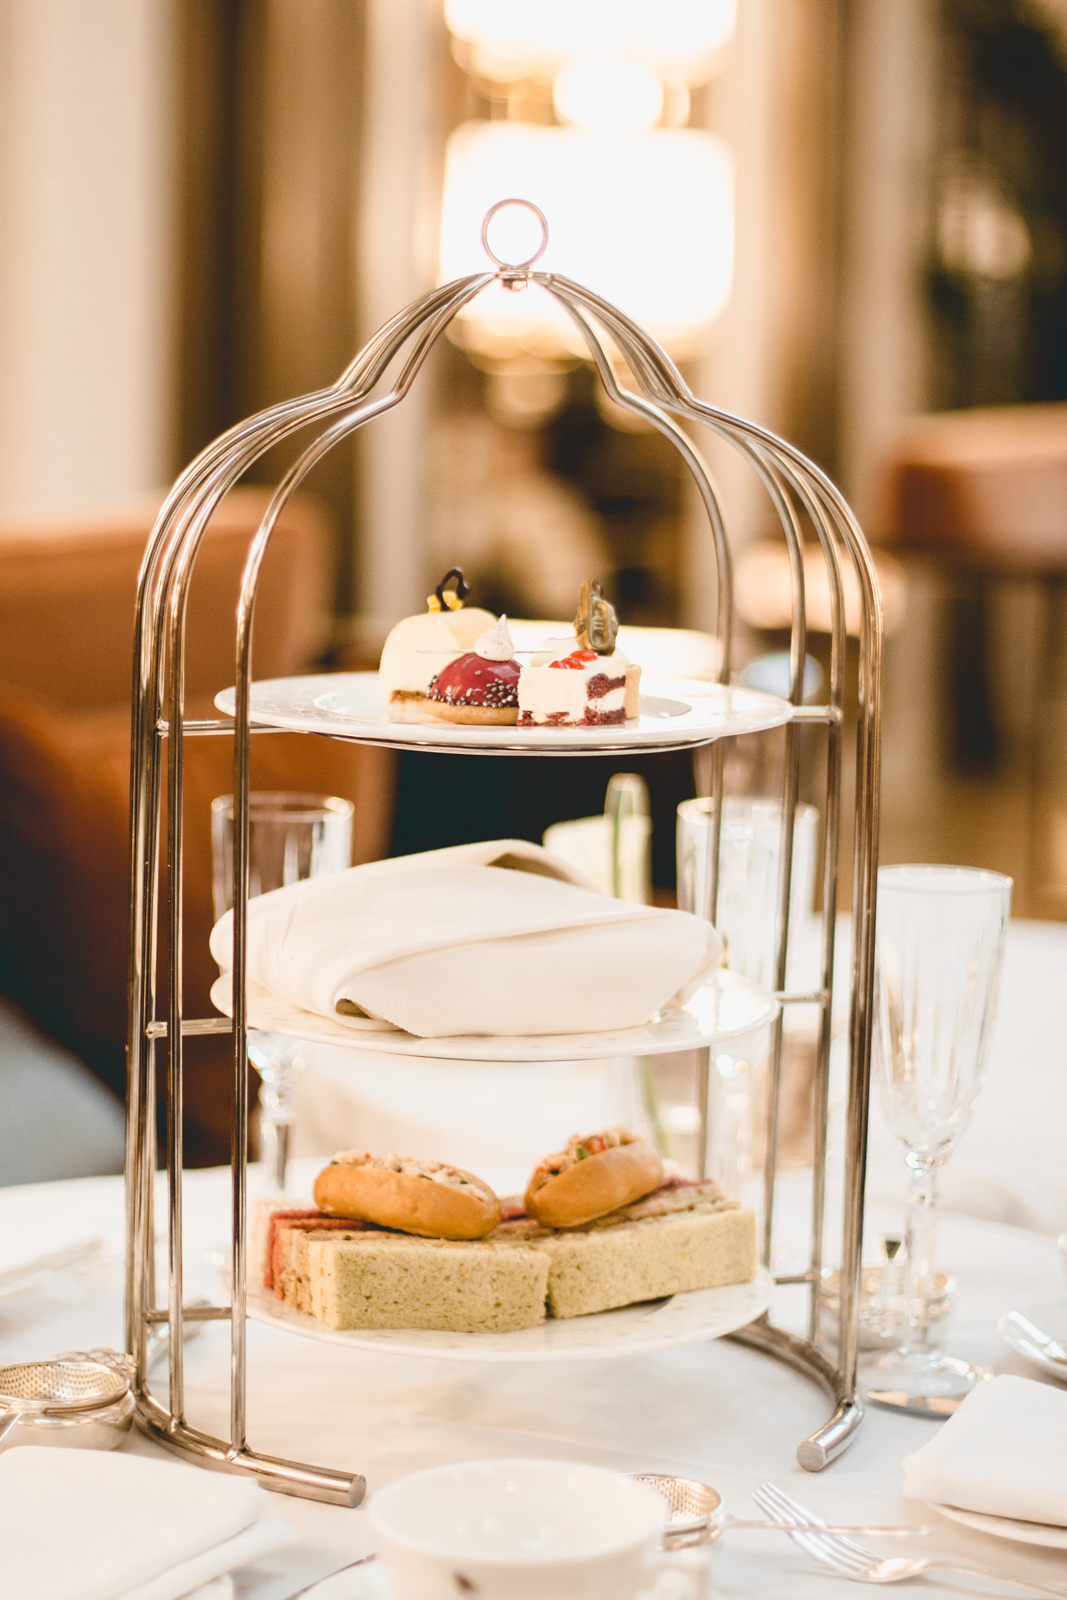 Sheraton Park Lane Jazz afternoon tea review Mayfair